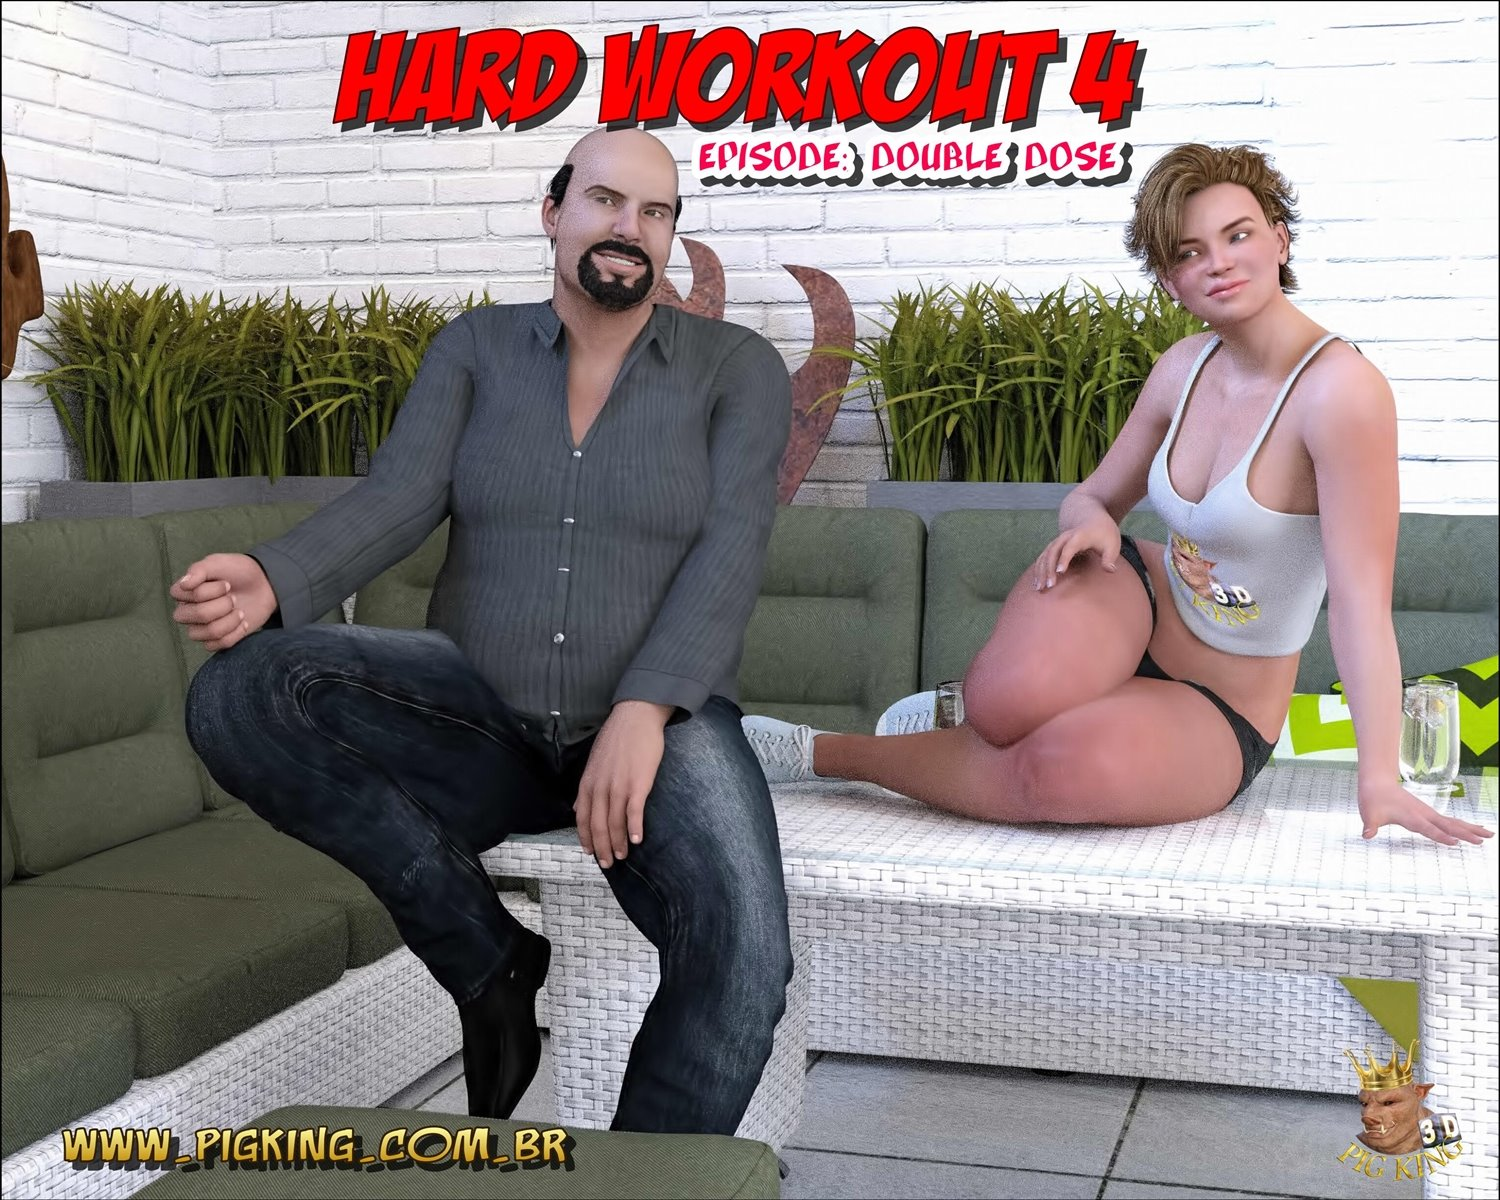 Pig King- Hard Workout 4 Double Dose image 1